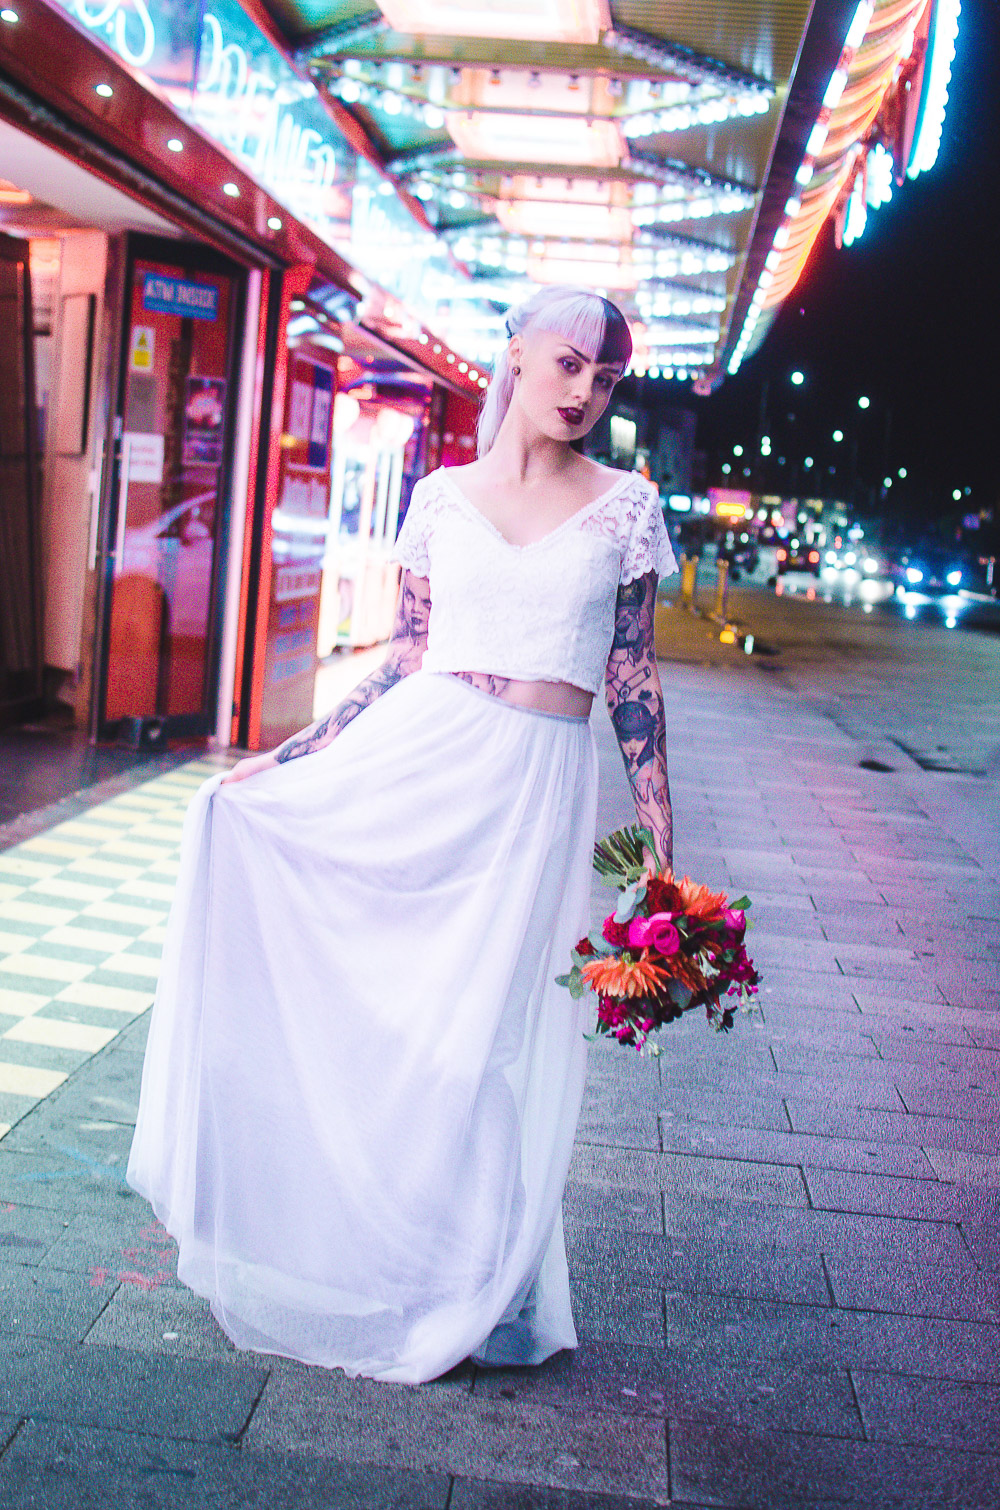 alternative wedding inspiration, amusements park wedding, bridal sepeartes, city wedding, Colourful wedding, colourful wedding bouquets, cruella hair, elopement, elopement shoot, Khandie Photography, lace bridal dresses, Lucy Cant Dance, Modern Wedding, neon sign, nighttime wedding, seafront wedding, tattooed bride, tattooed groom, The Flower Arranger, unique wedidng dresses, vegas baby, vegas style wedding, vegas wedding, vibrant wedding, wedding dress